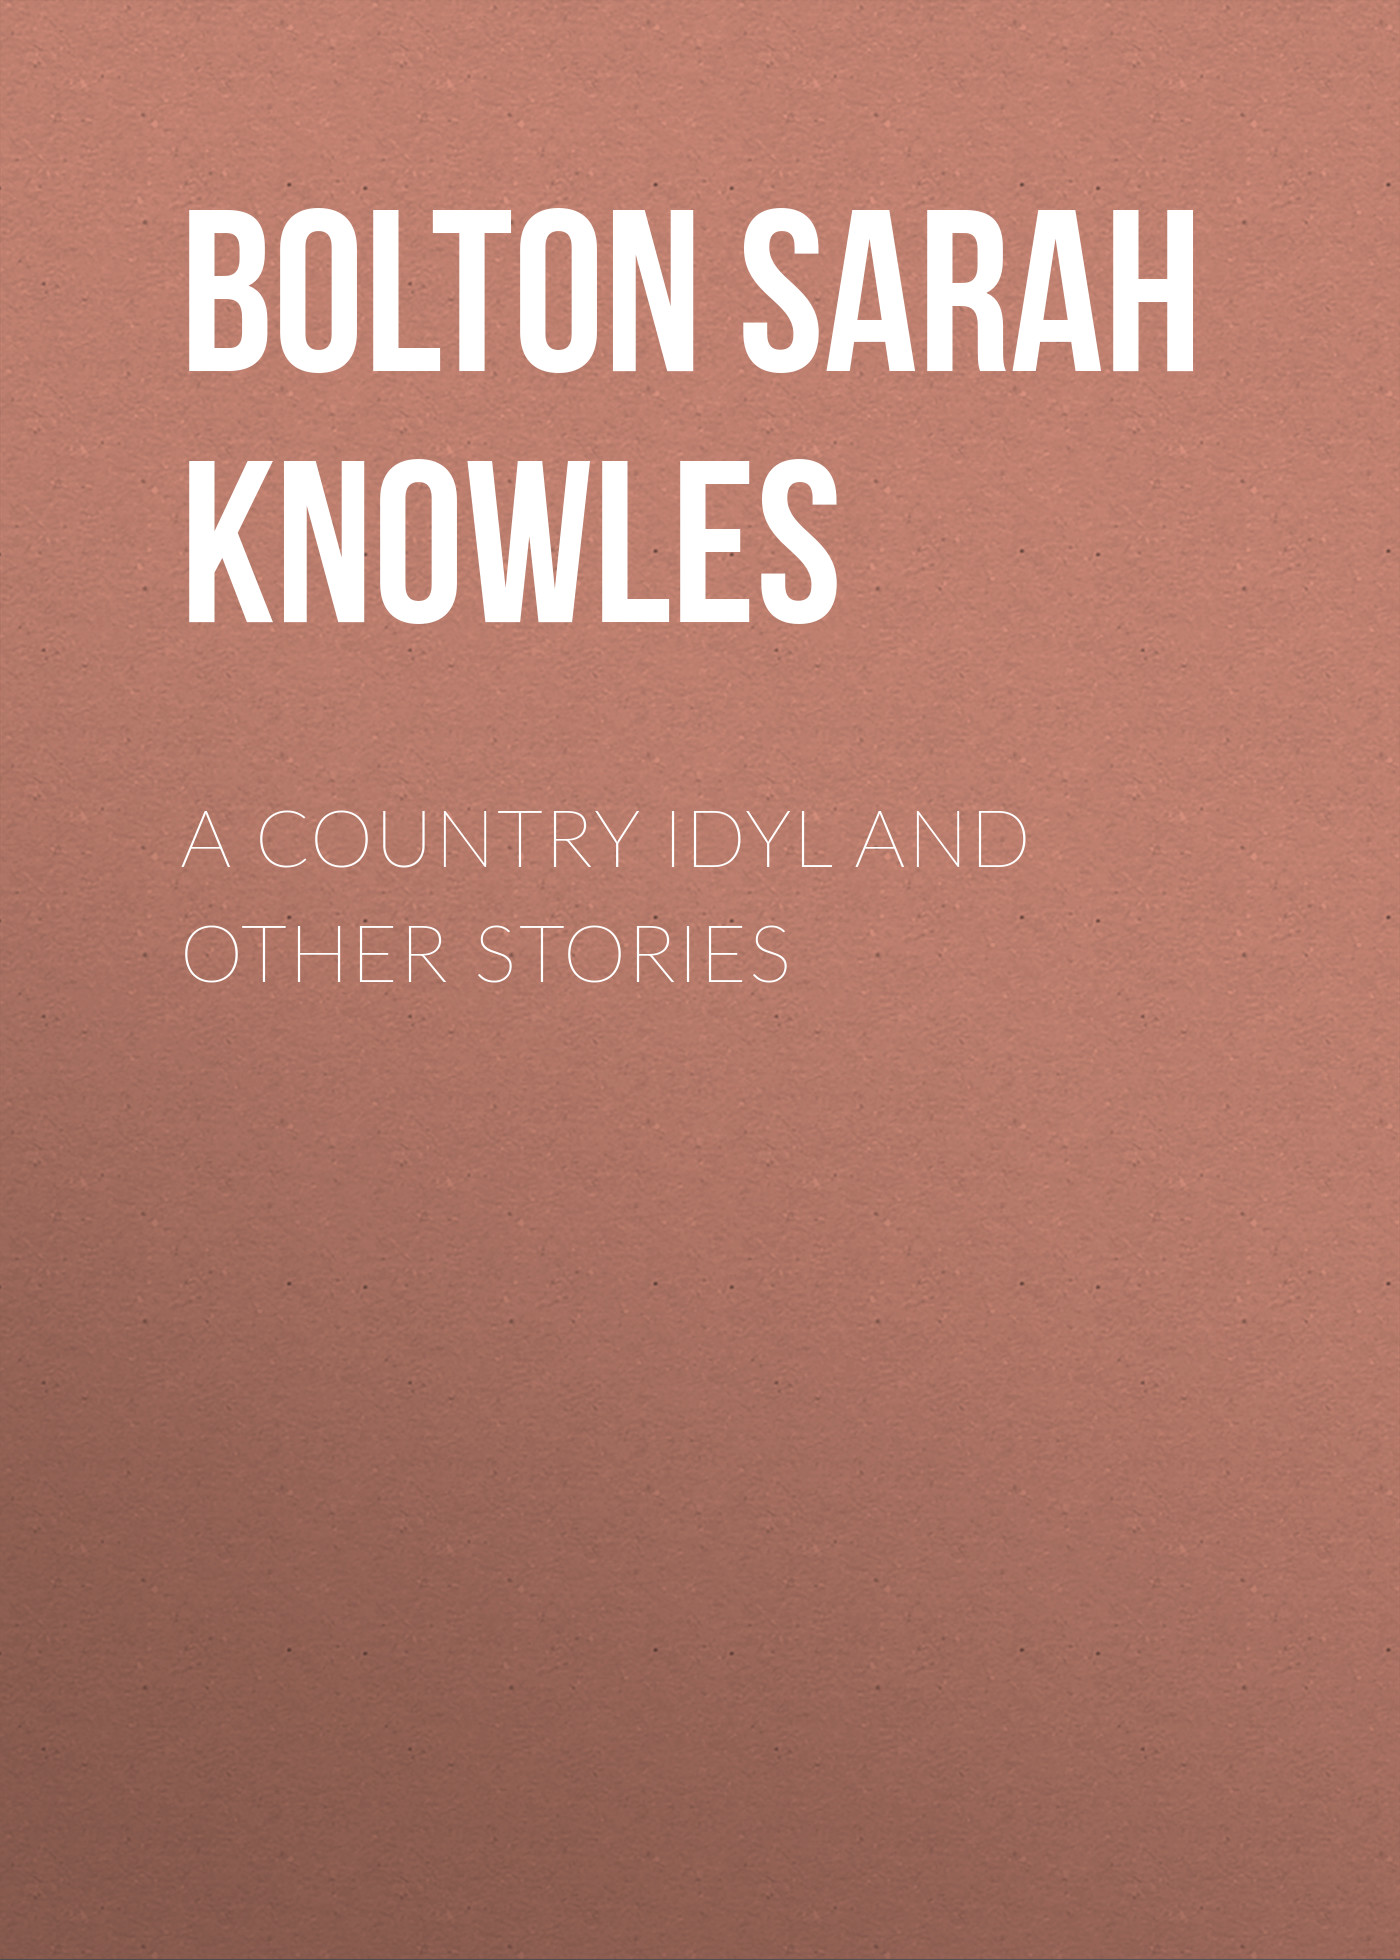 Bolton Sarah Knowles A Country Idyl and Other Stories bolton sarah knowles famous men of science